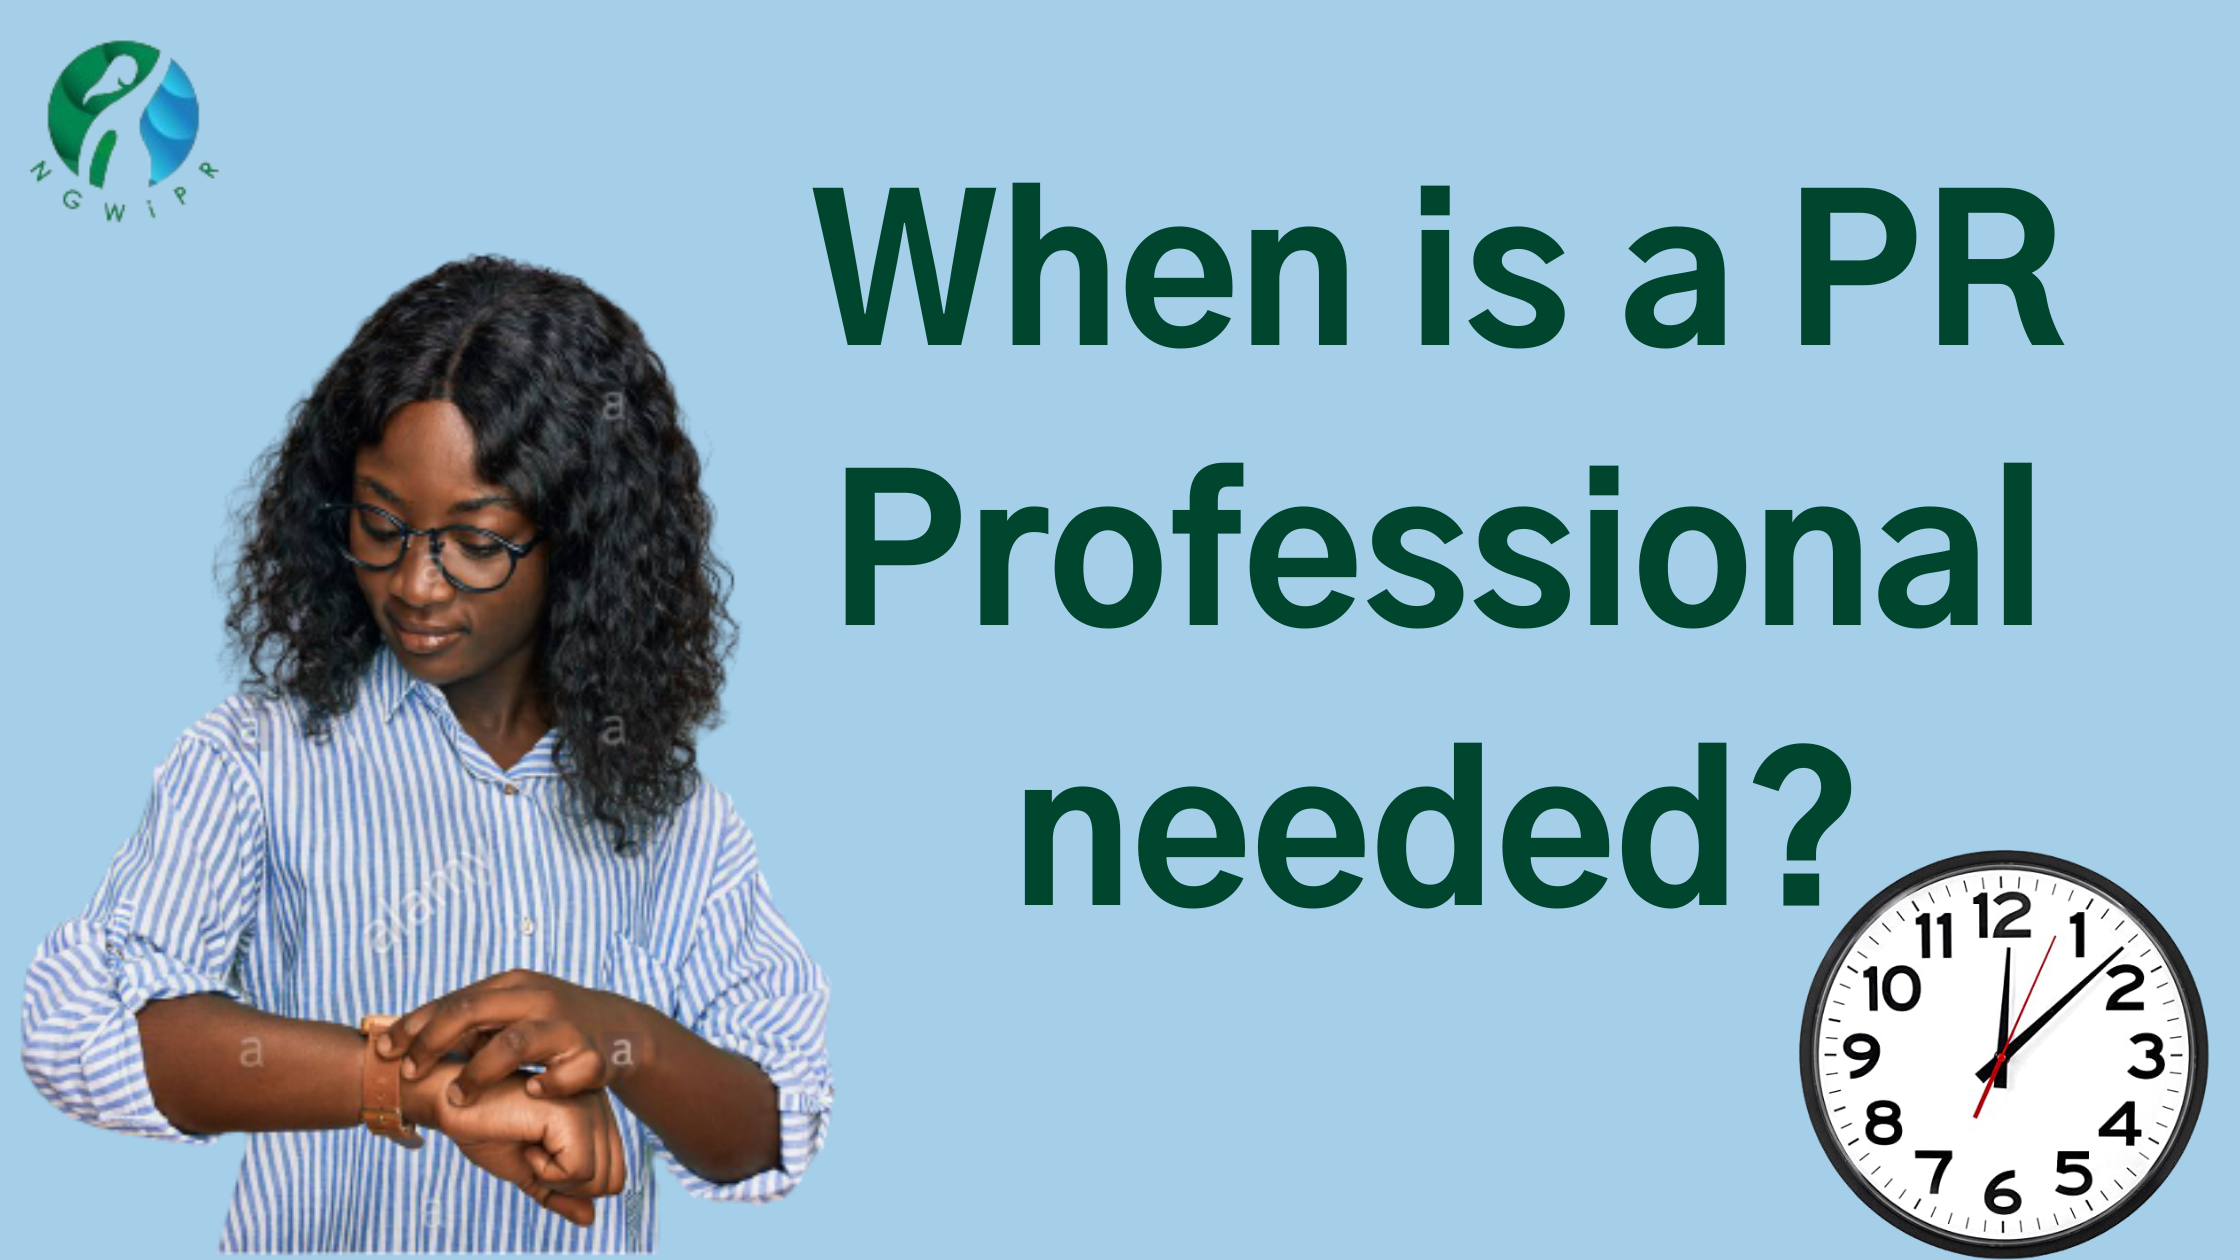 WHEN IS A PR PROFESSIONAL NEEDED?